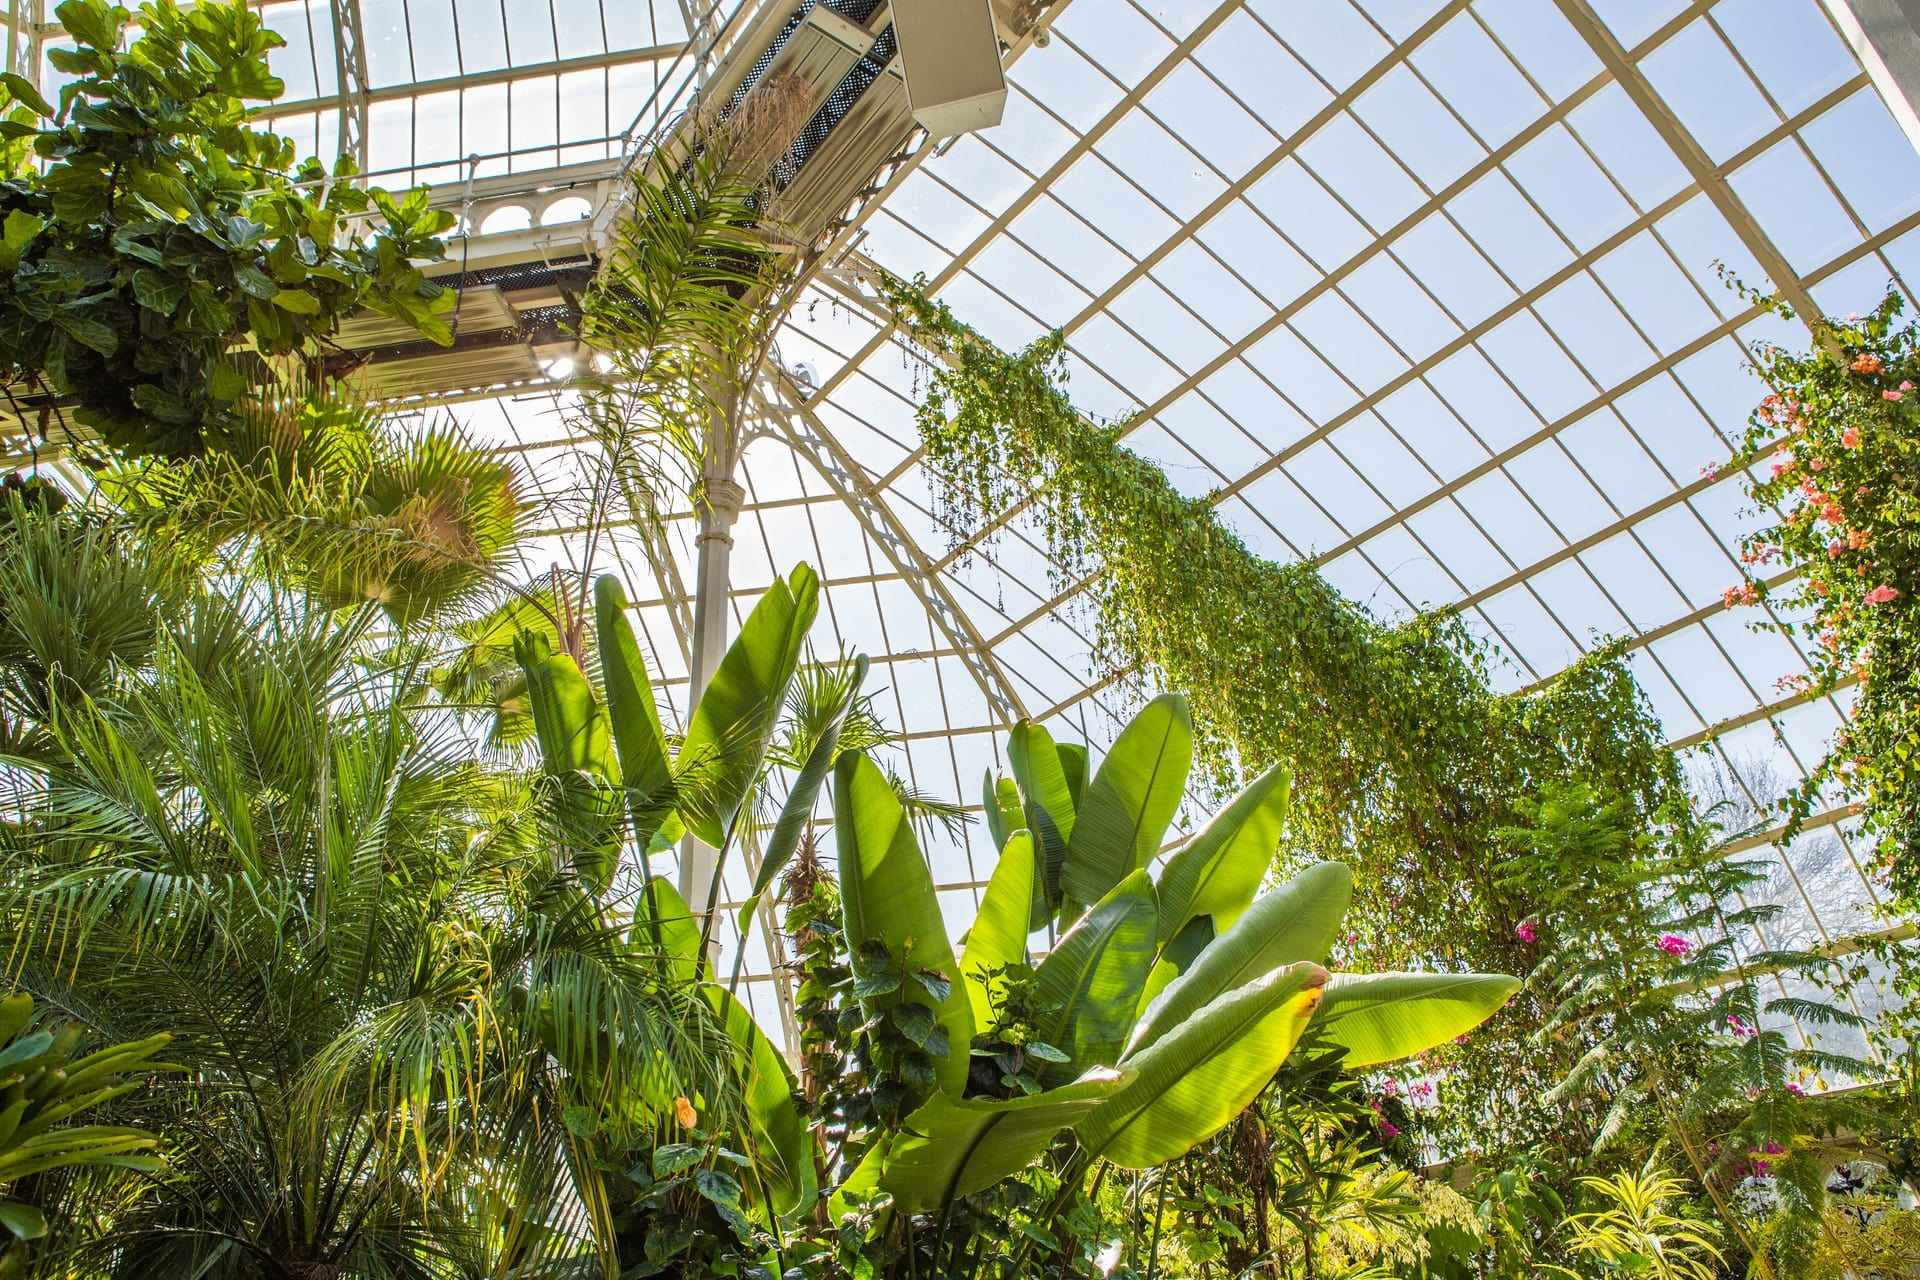 plants-in-large-greenhouse-on-sunny-day-at-sefton-park-palm-house-preservation-trust-date-ideas-liverpool